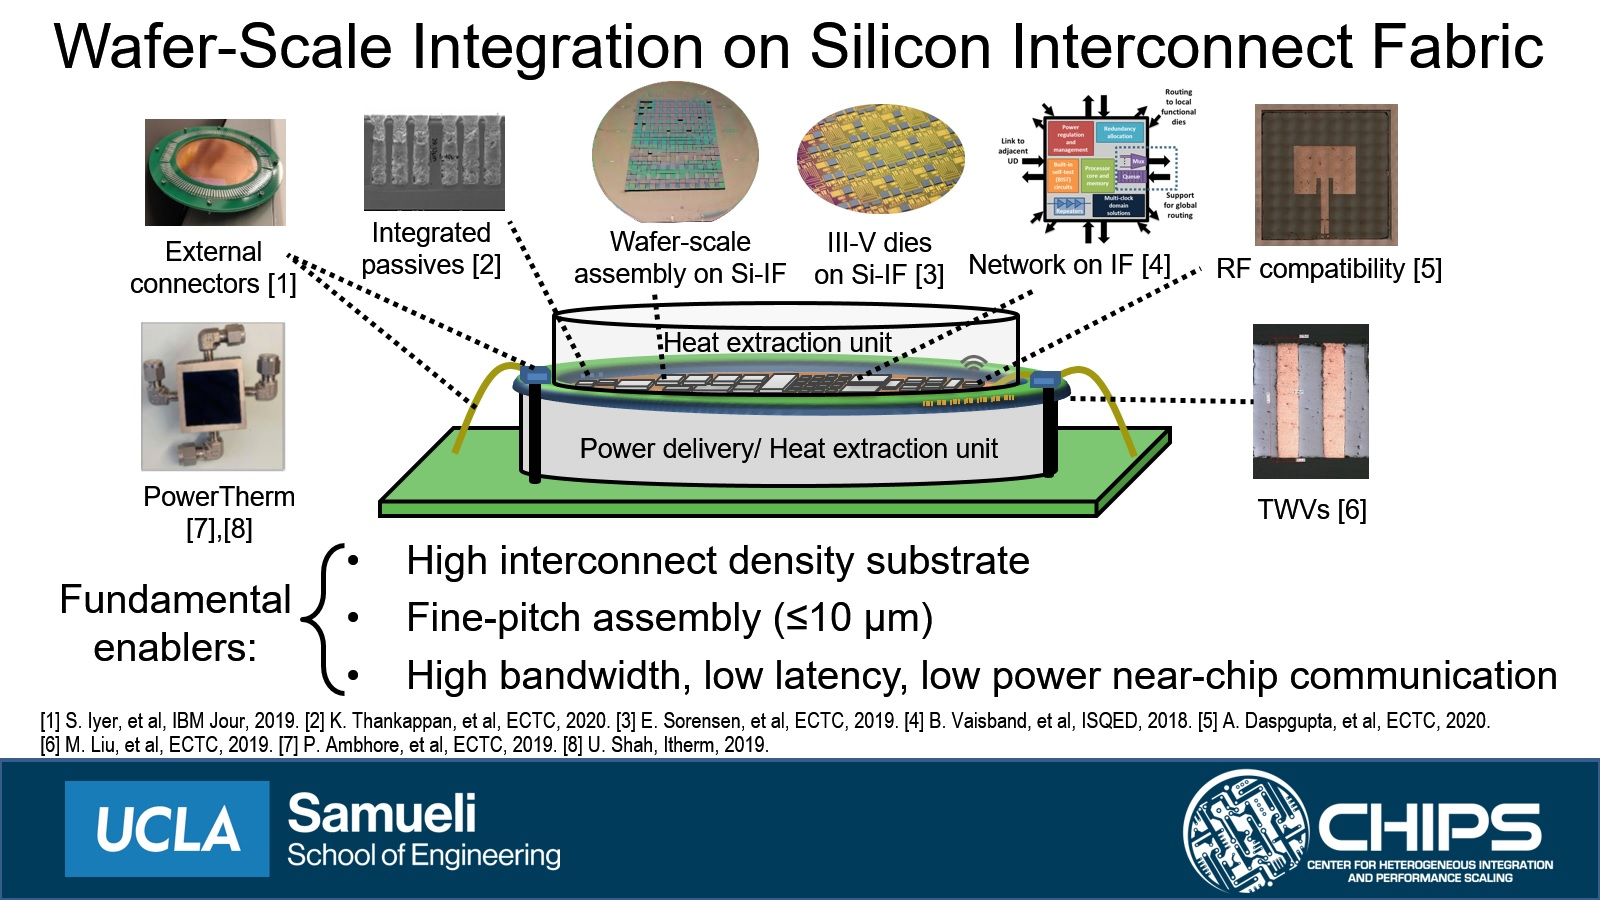 Demonstration of a Low Latency Fine-pitch Assembly on the Silicon Interconnect Fabric